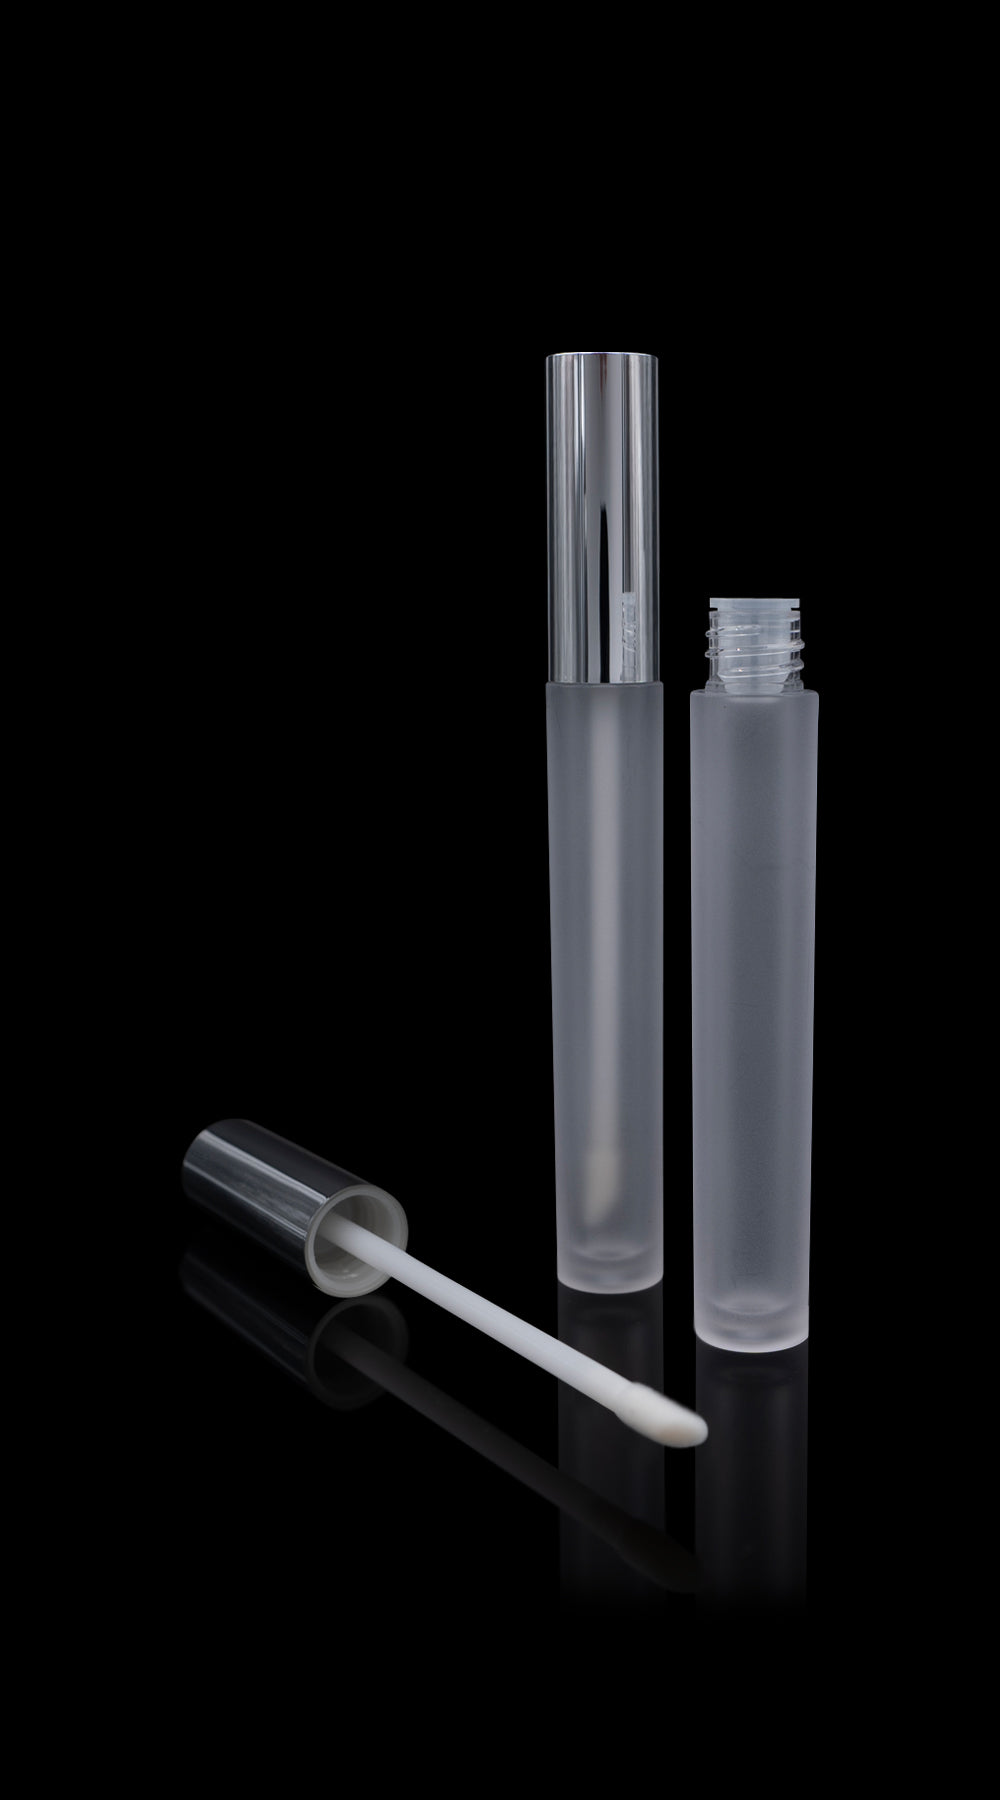 Vibe Lip Gloss Container Shiny Silver Cap with Frosted Bottle - Cosmetic Packaging Now